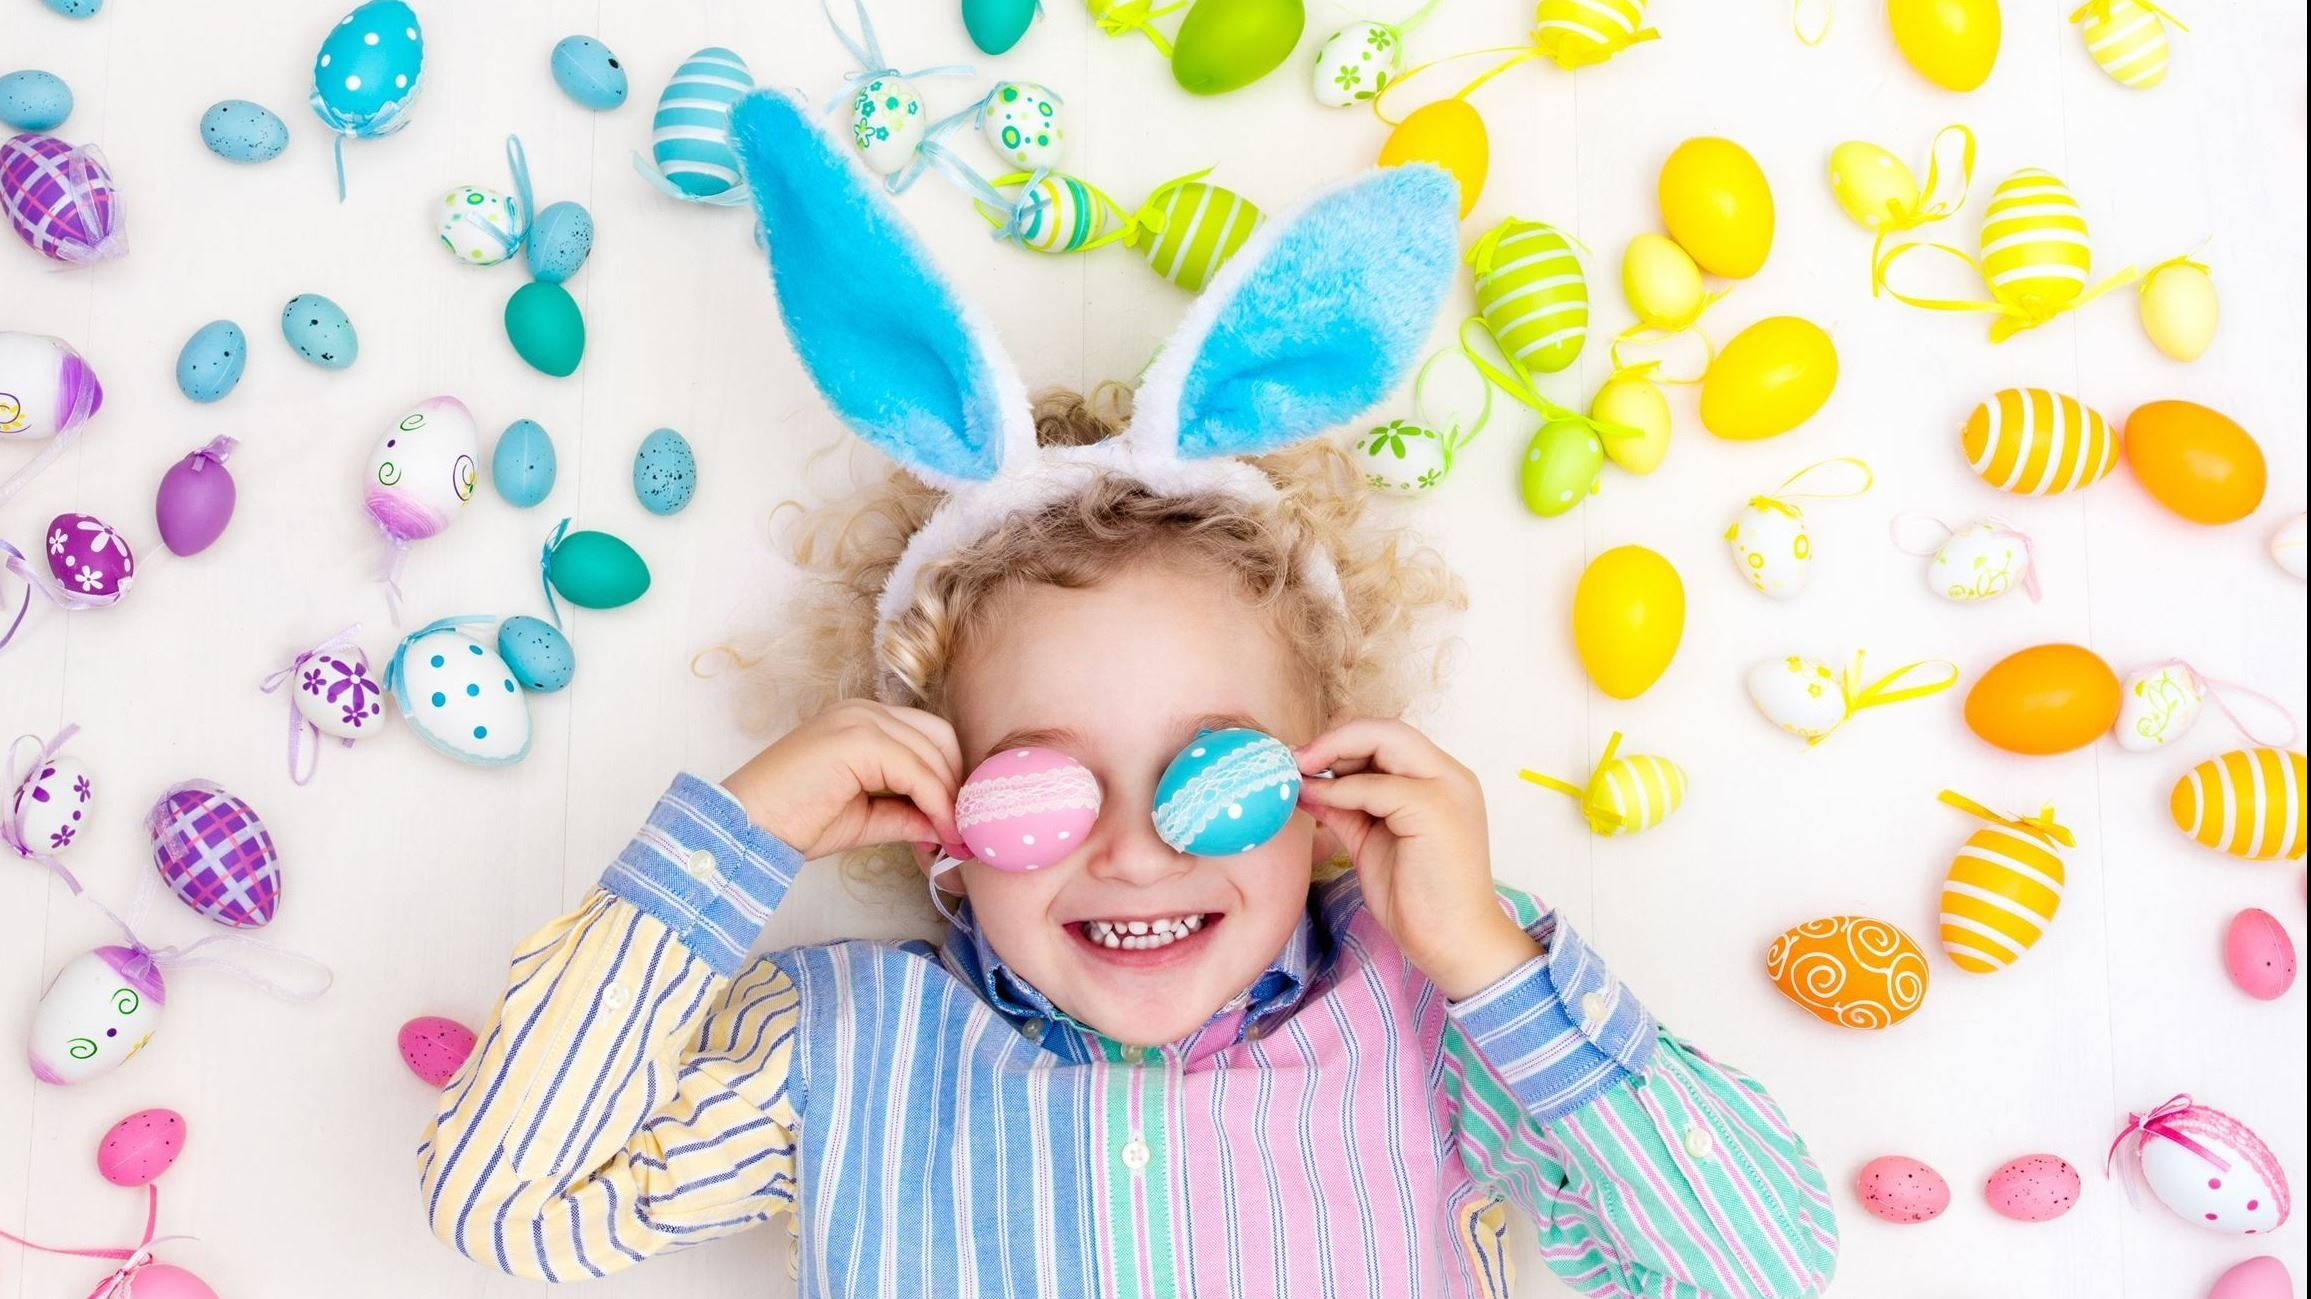 Child wearing sunglasses and bunny ears